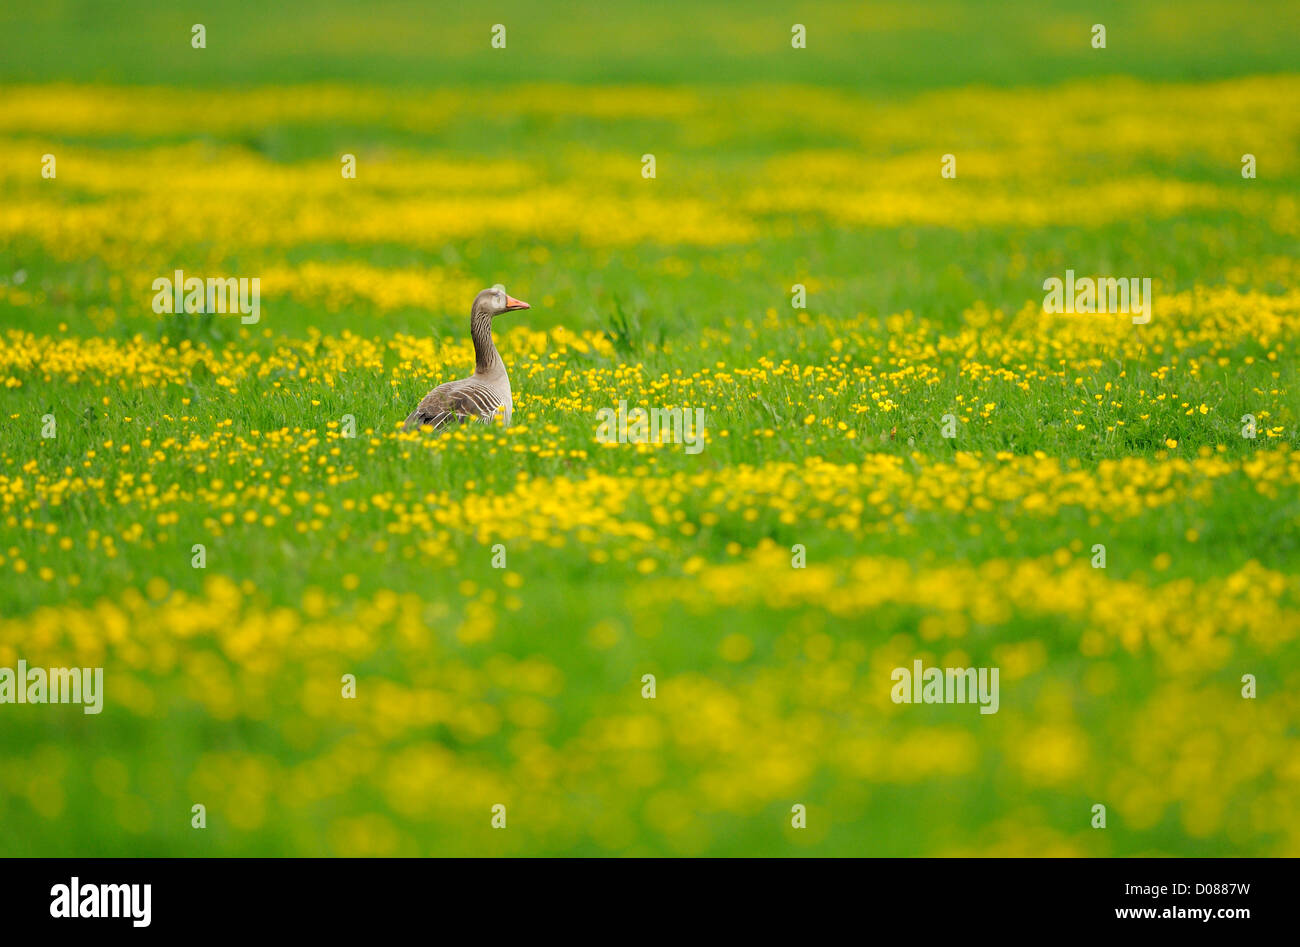 Greylag Goose (Anser anser) standing in field of buttercups, Holland, May - Stock Image